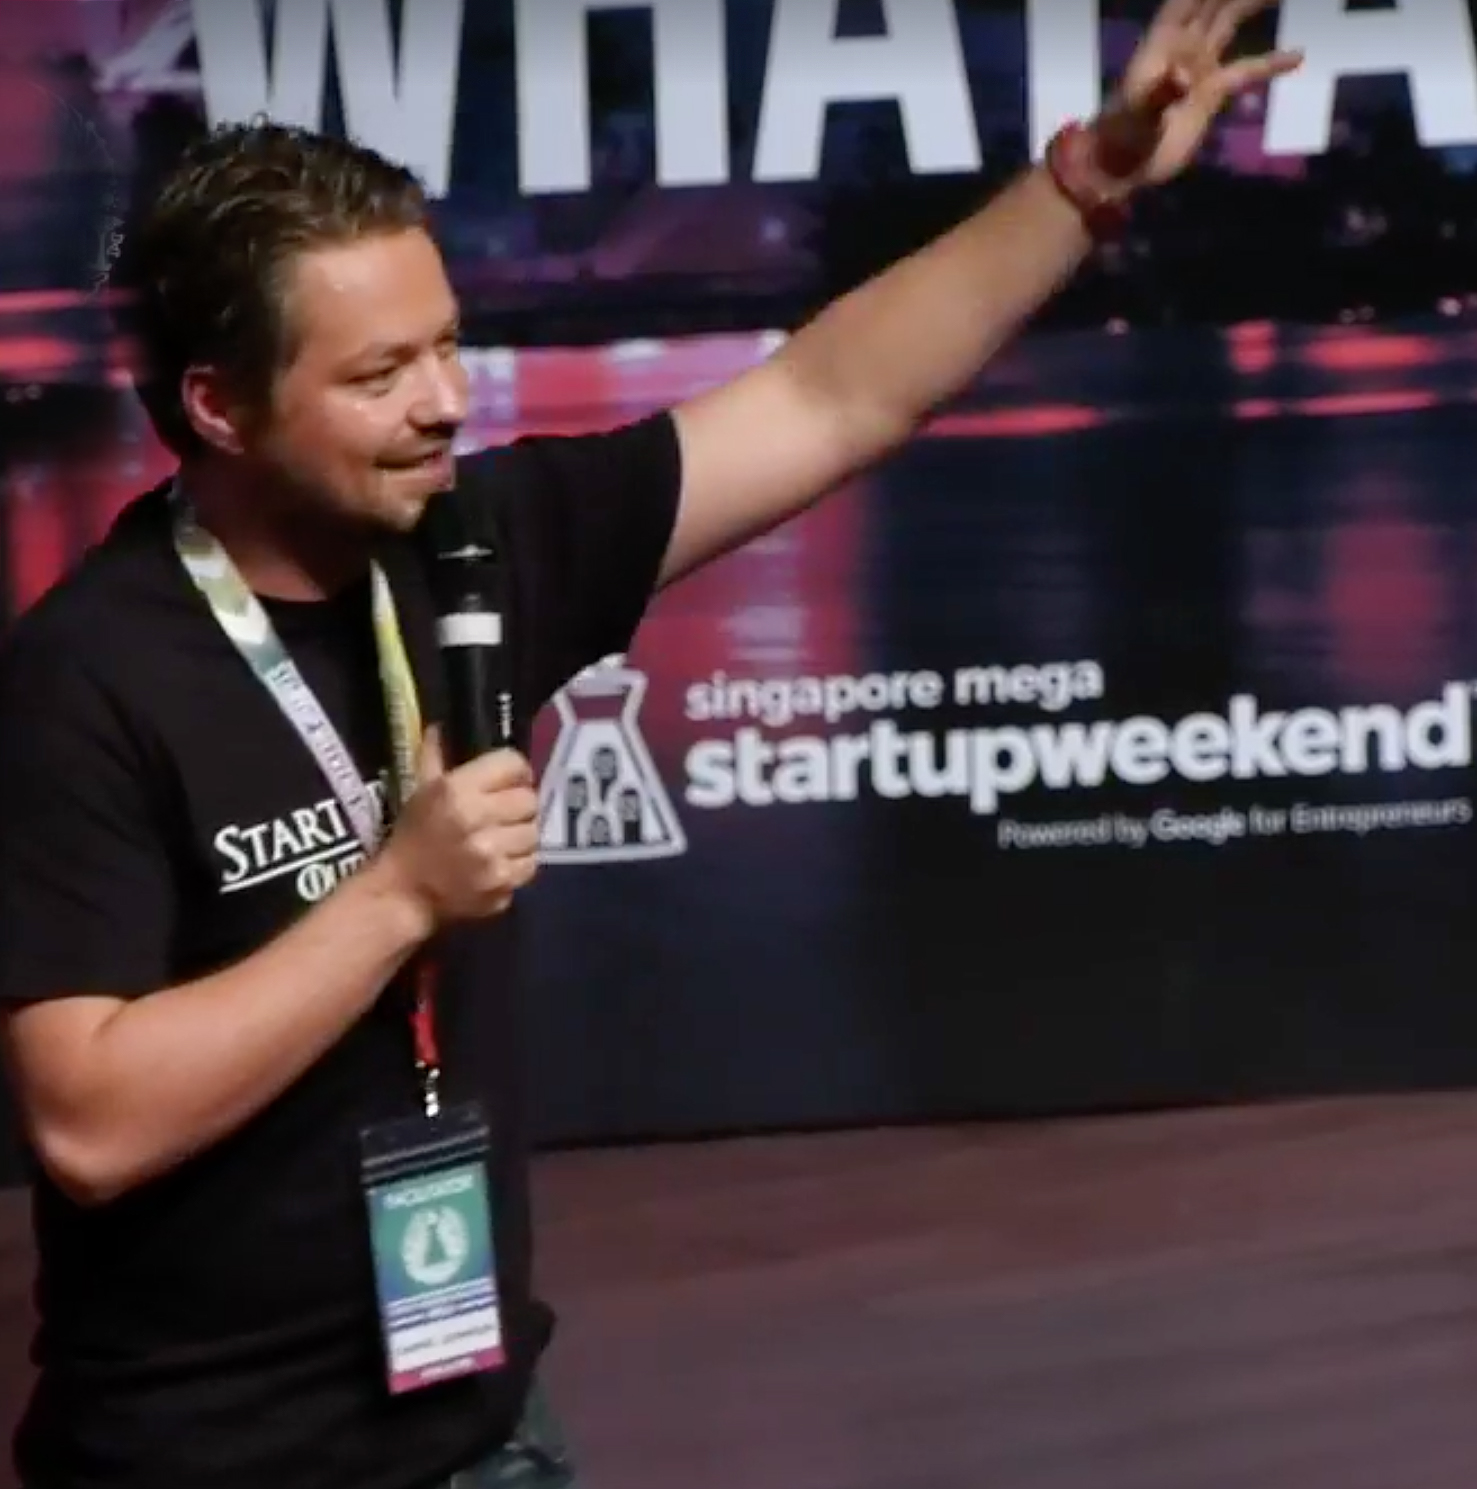 startup-weekend-mega-livestreaming